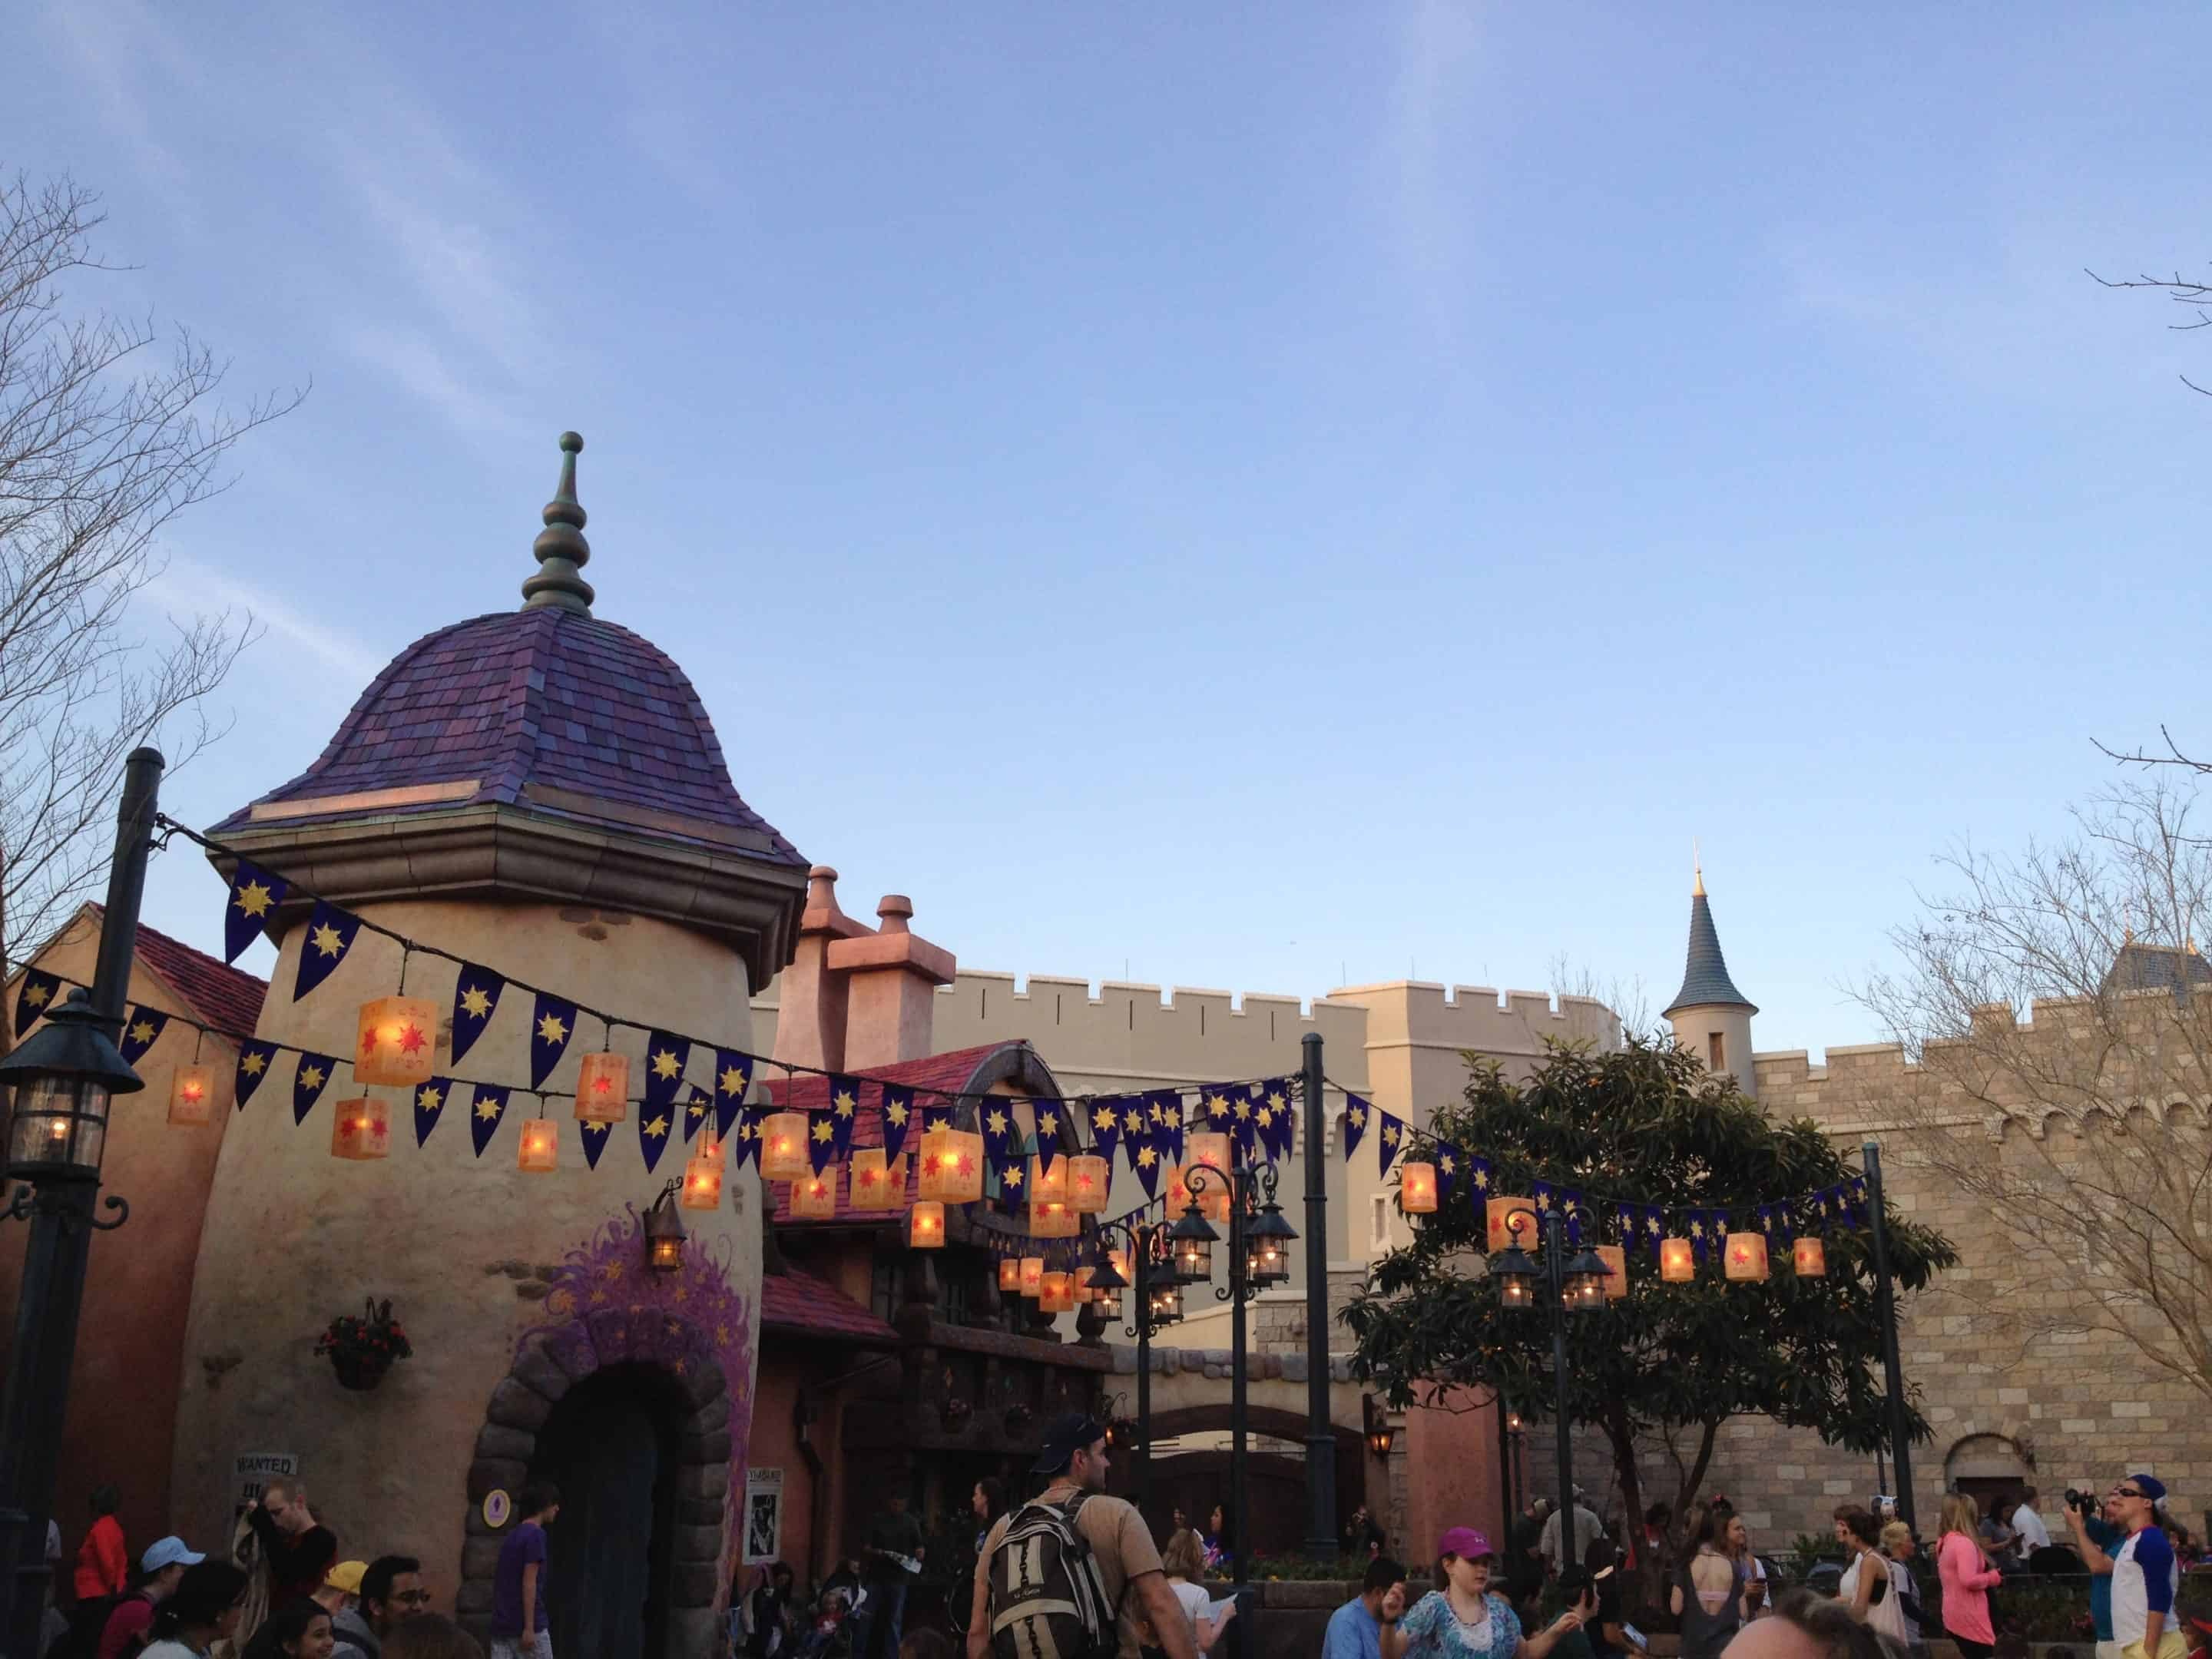 PHOTO TOUR: Tangled Area With Charging Stations Opens in Magic Kingdom